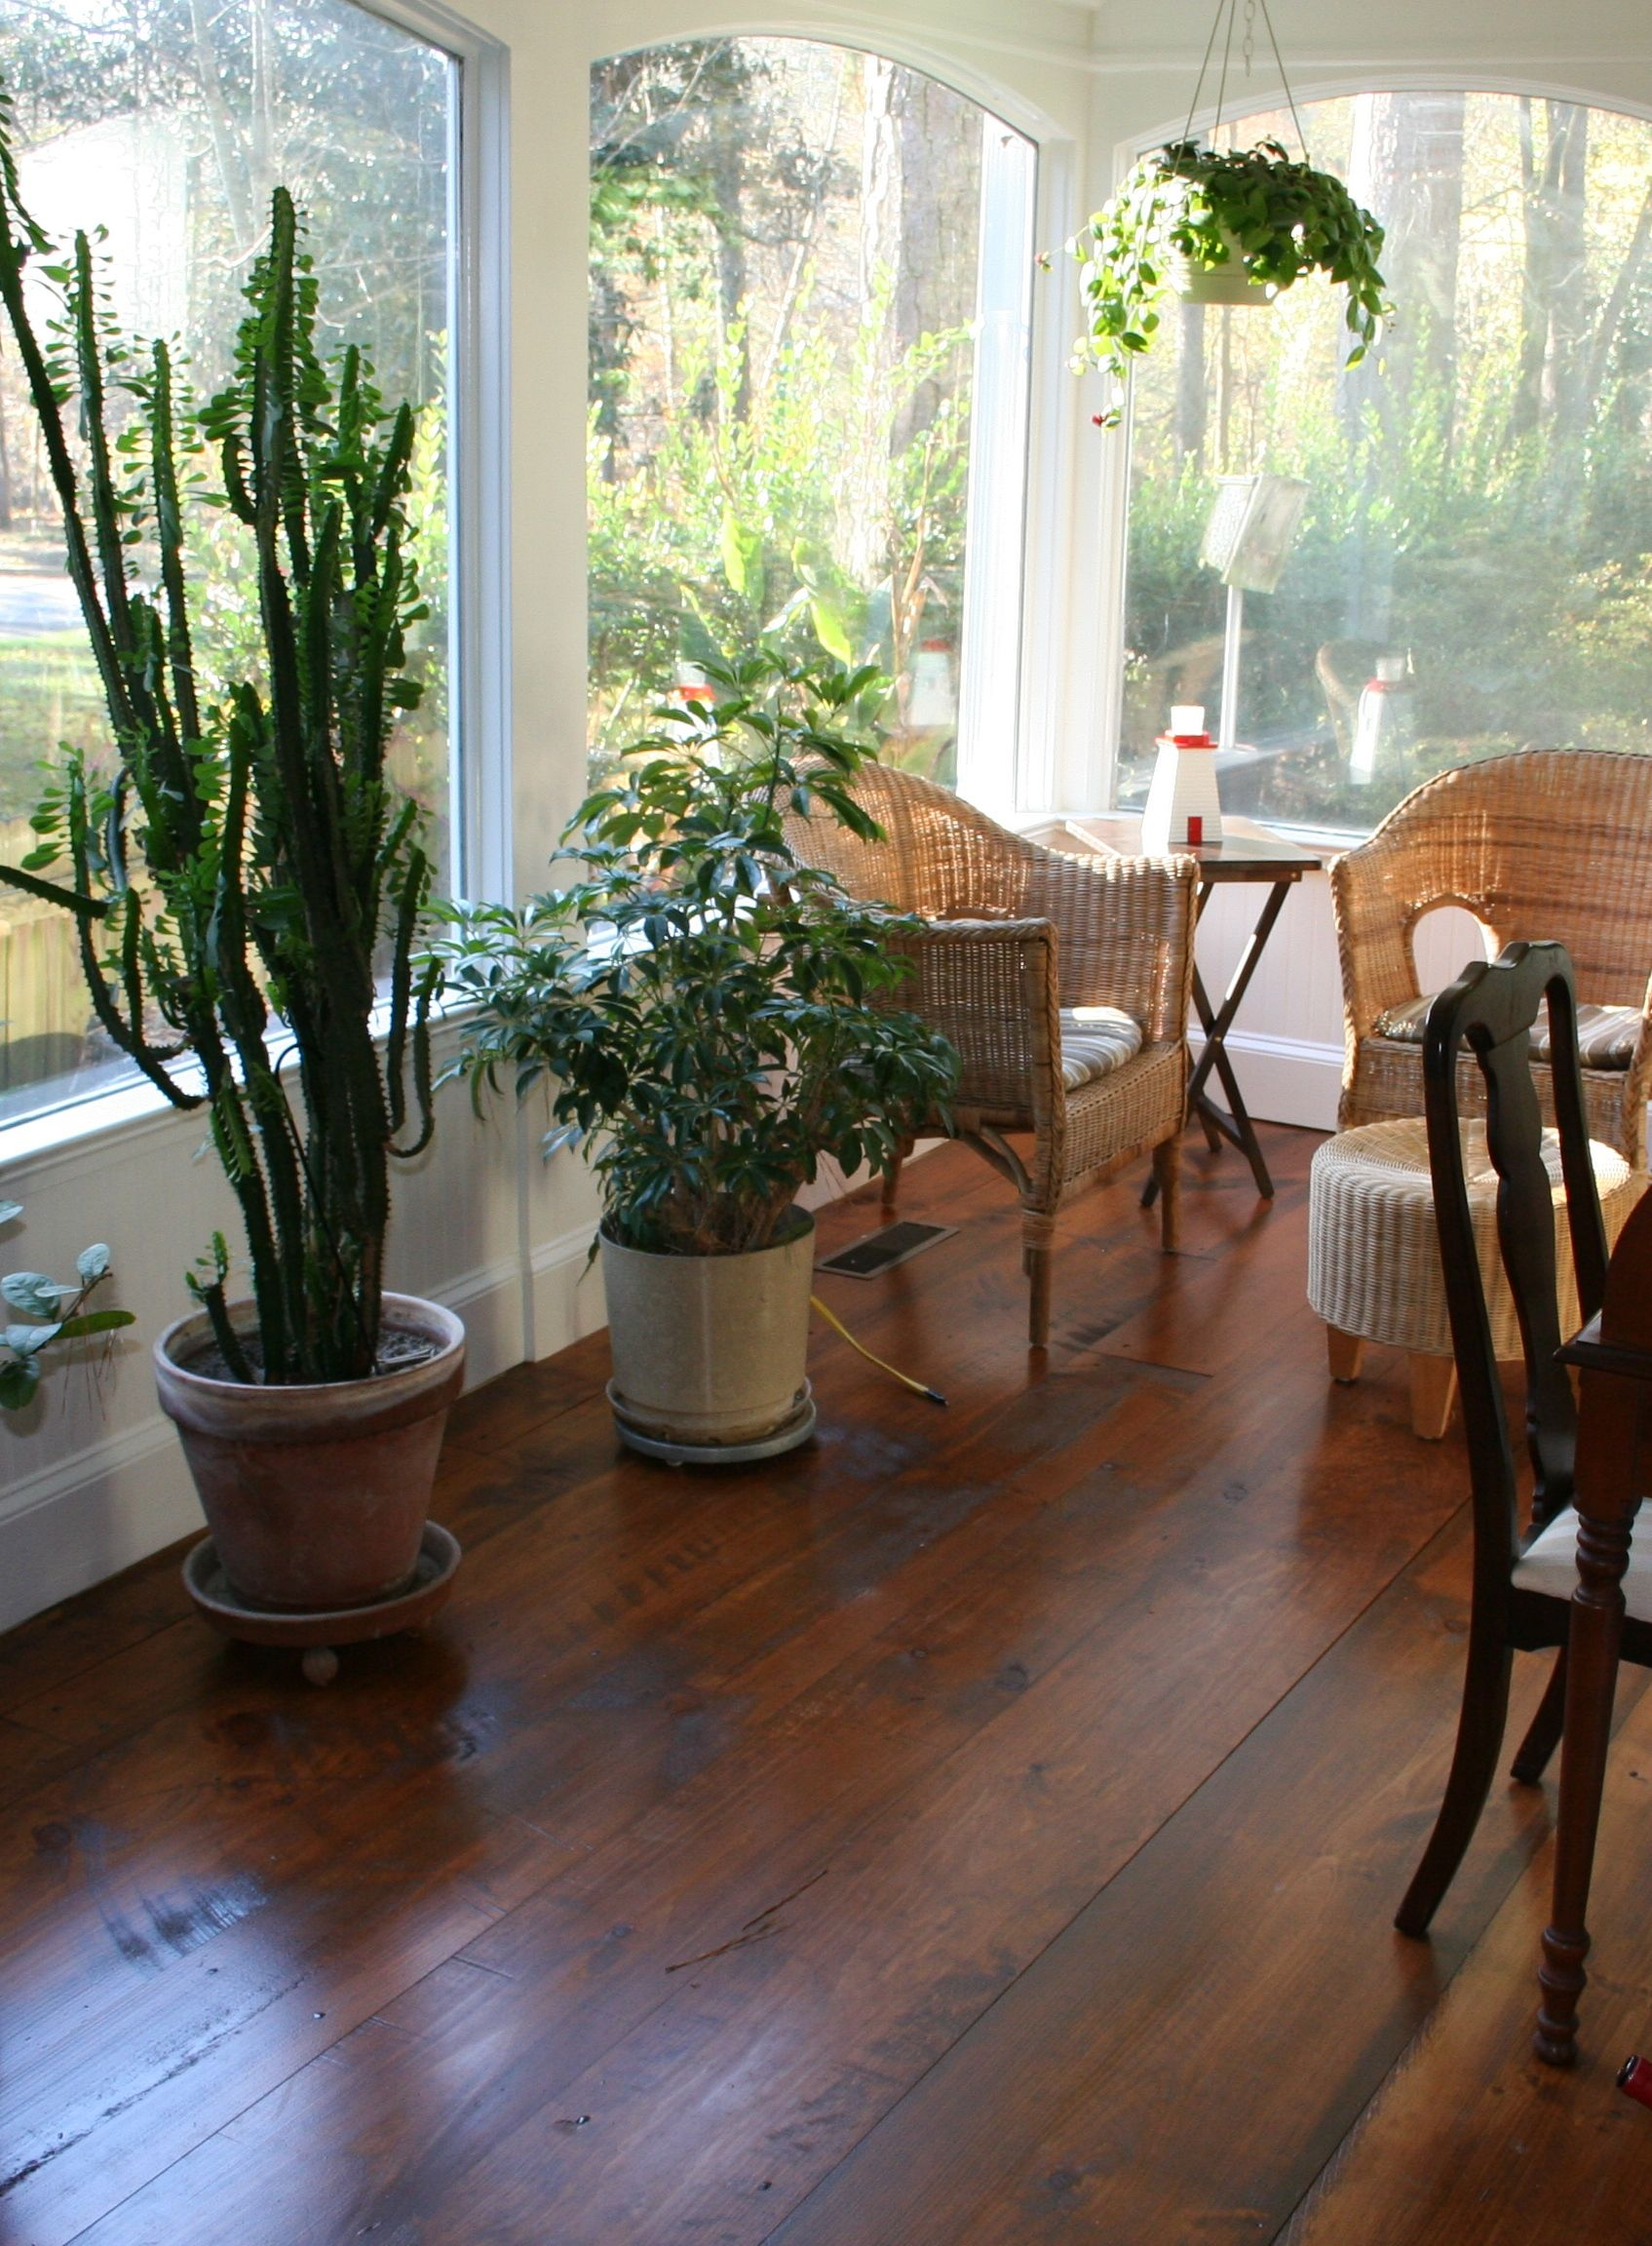 Eastern White Pine Flooring in a Dining Room in 2020